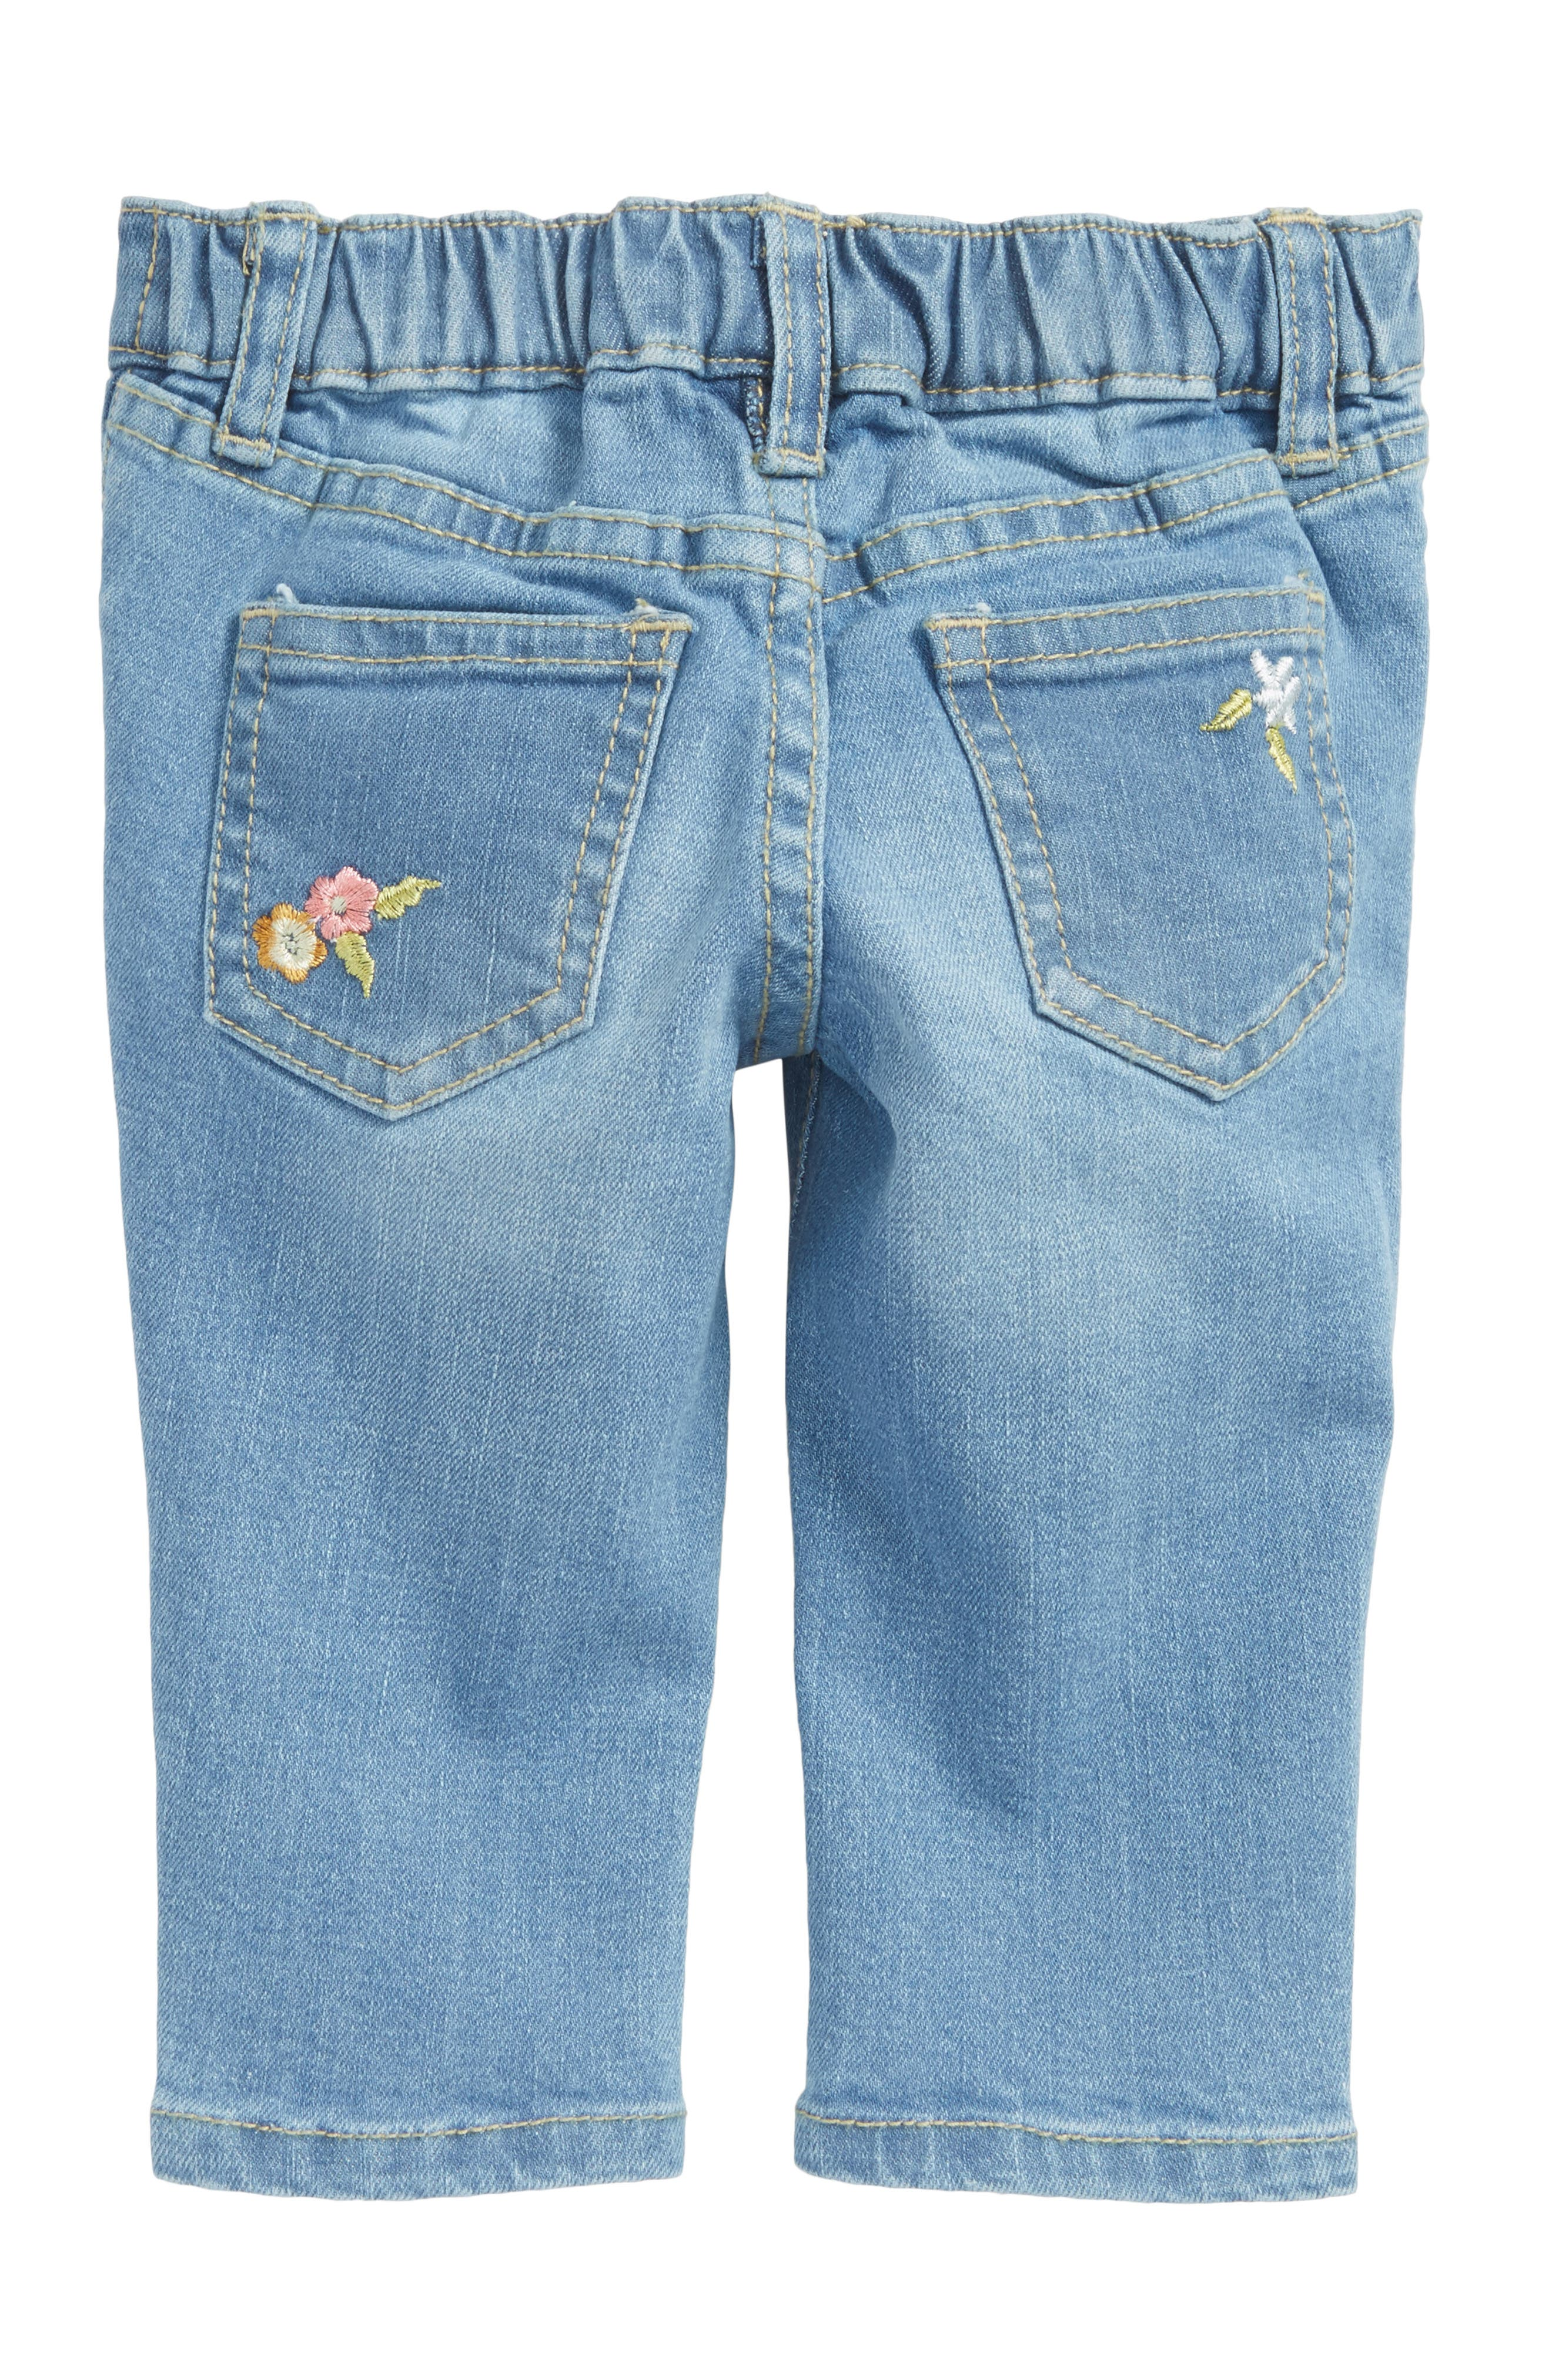 Taylor Embroidered Jeans,                             Alternate thumbnail 2, color,                             404